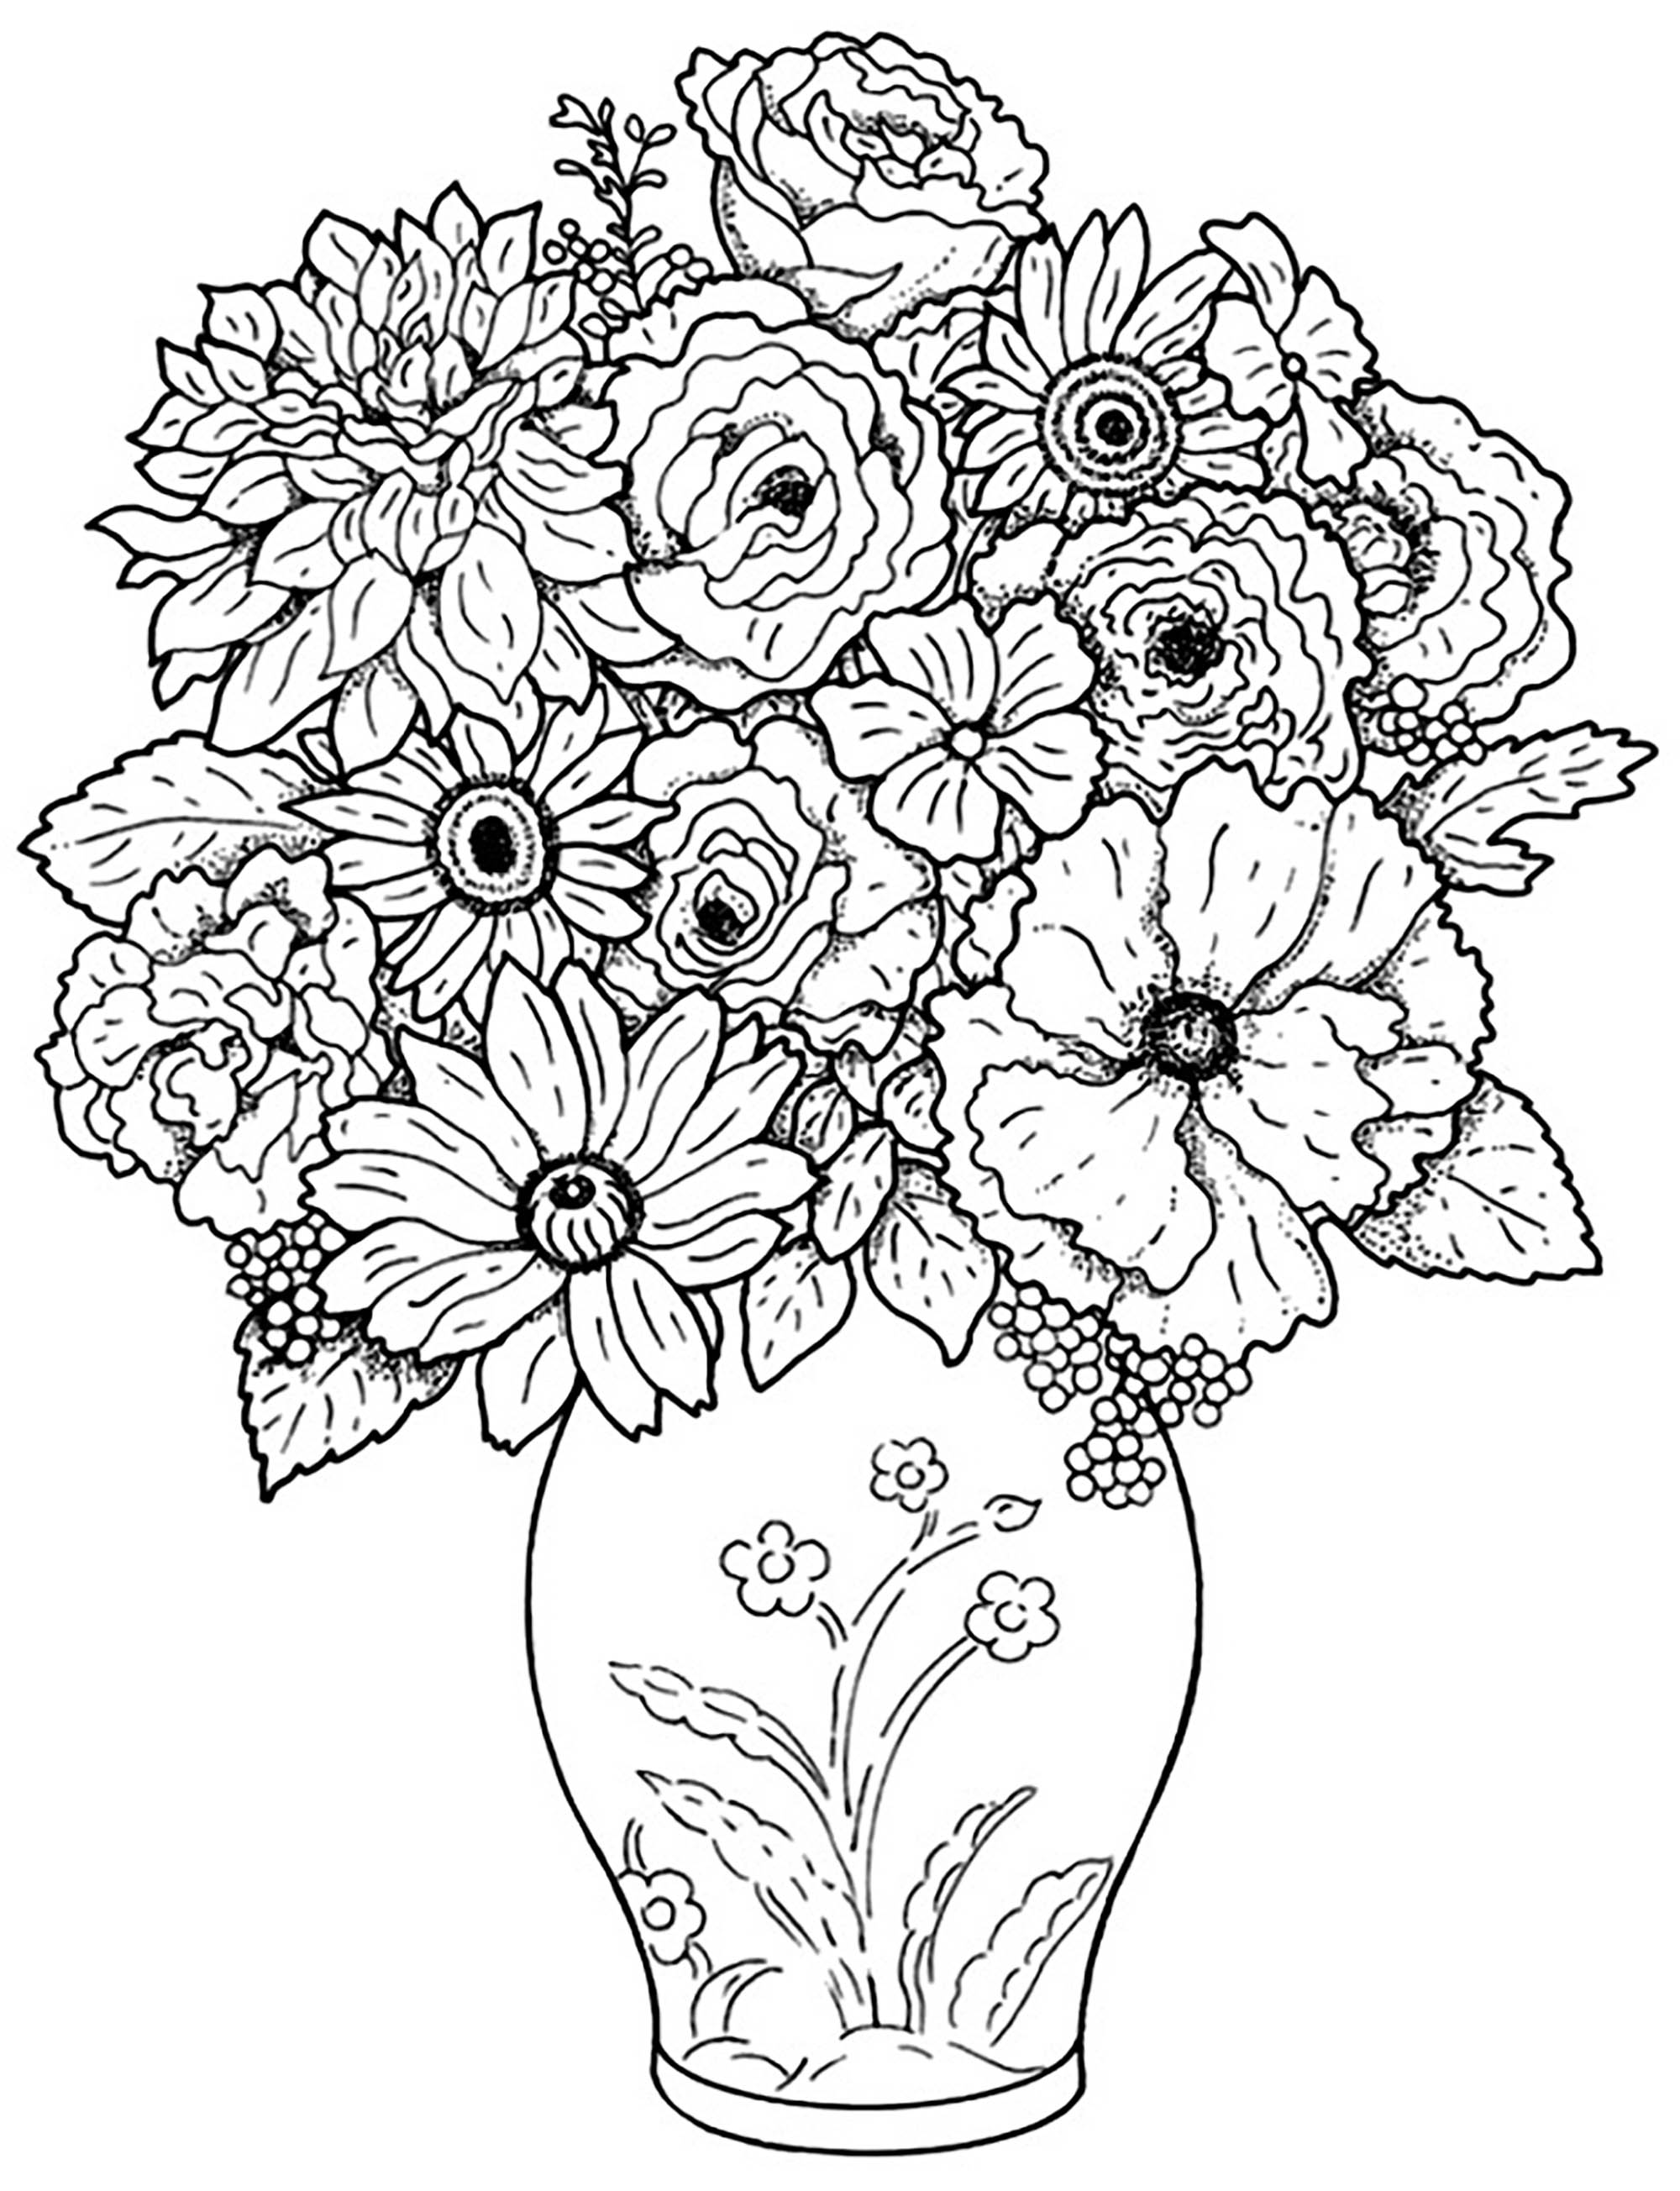 childrens coloring pages flowers free printable flower coloring pages for kids best childrens coloring pages flowers